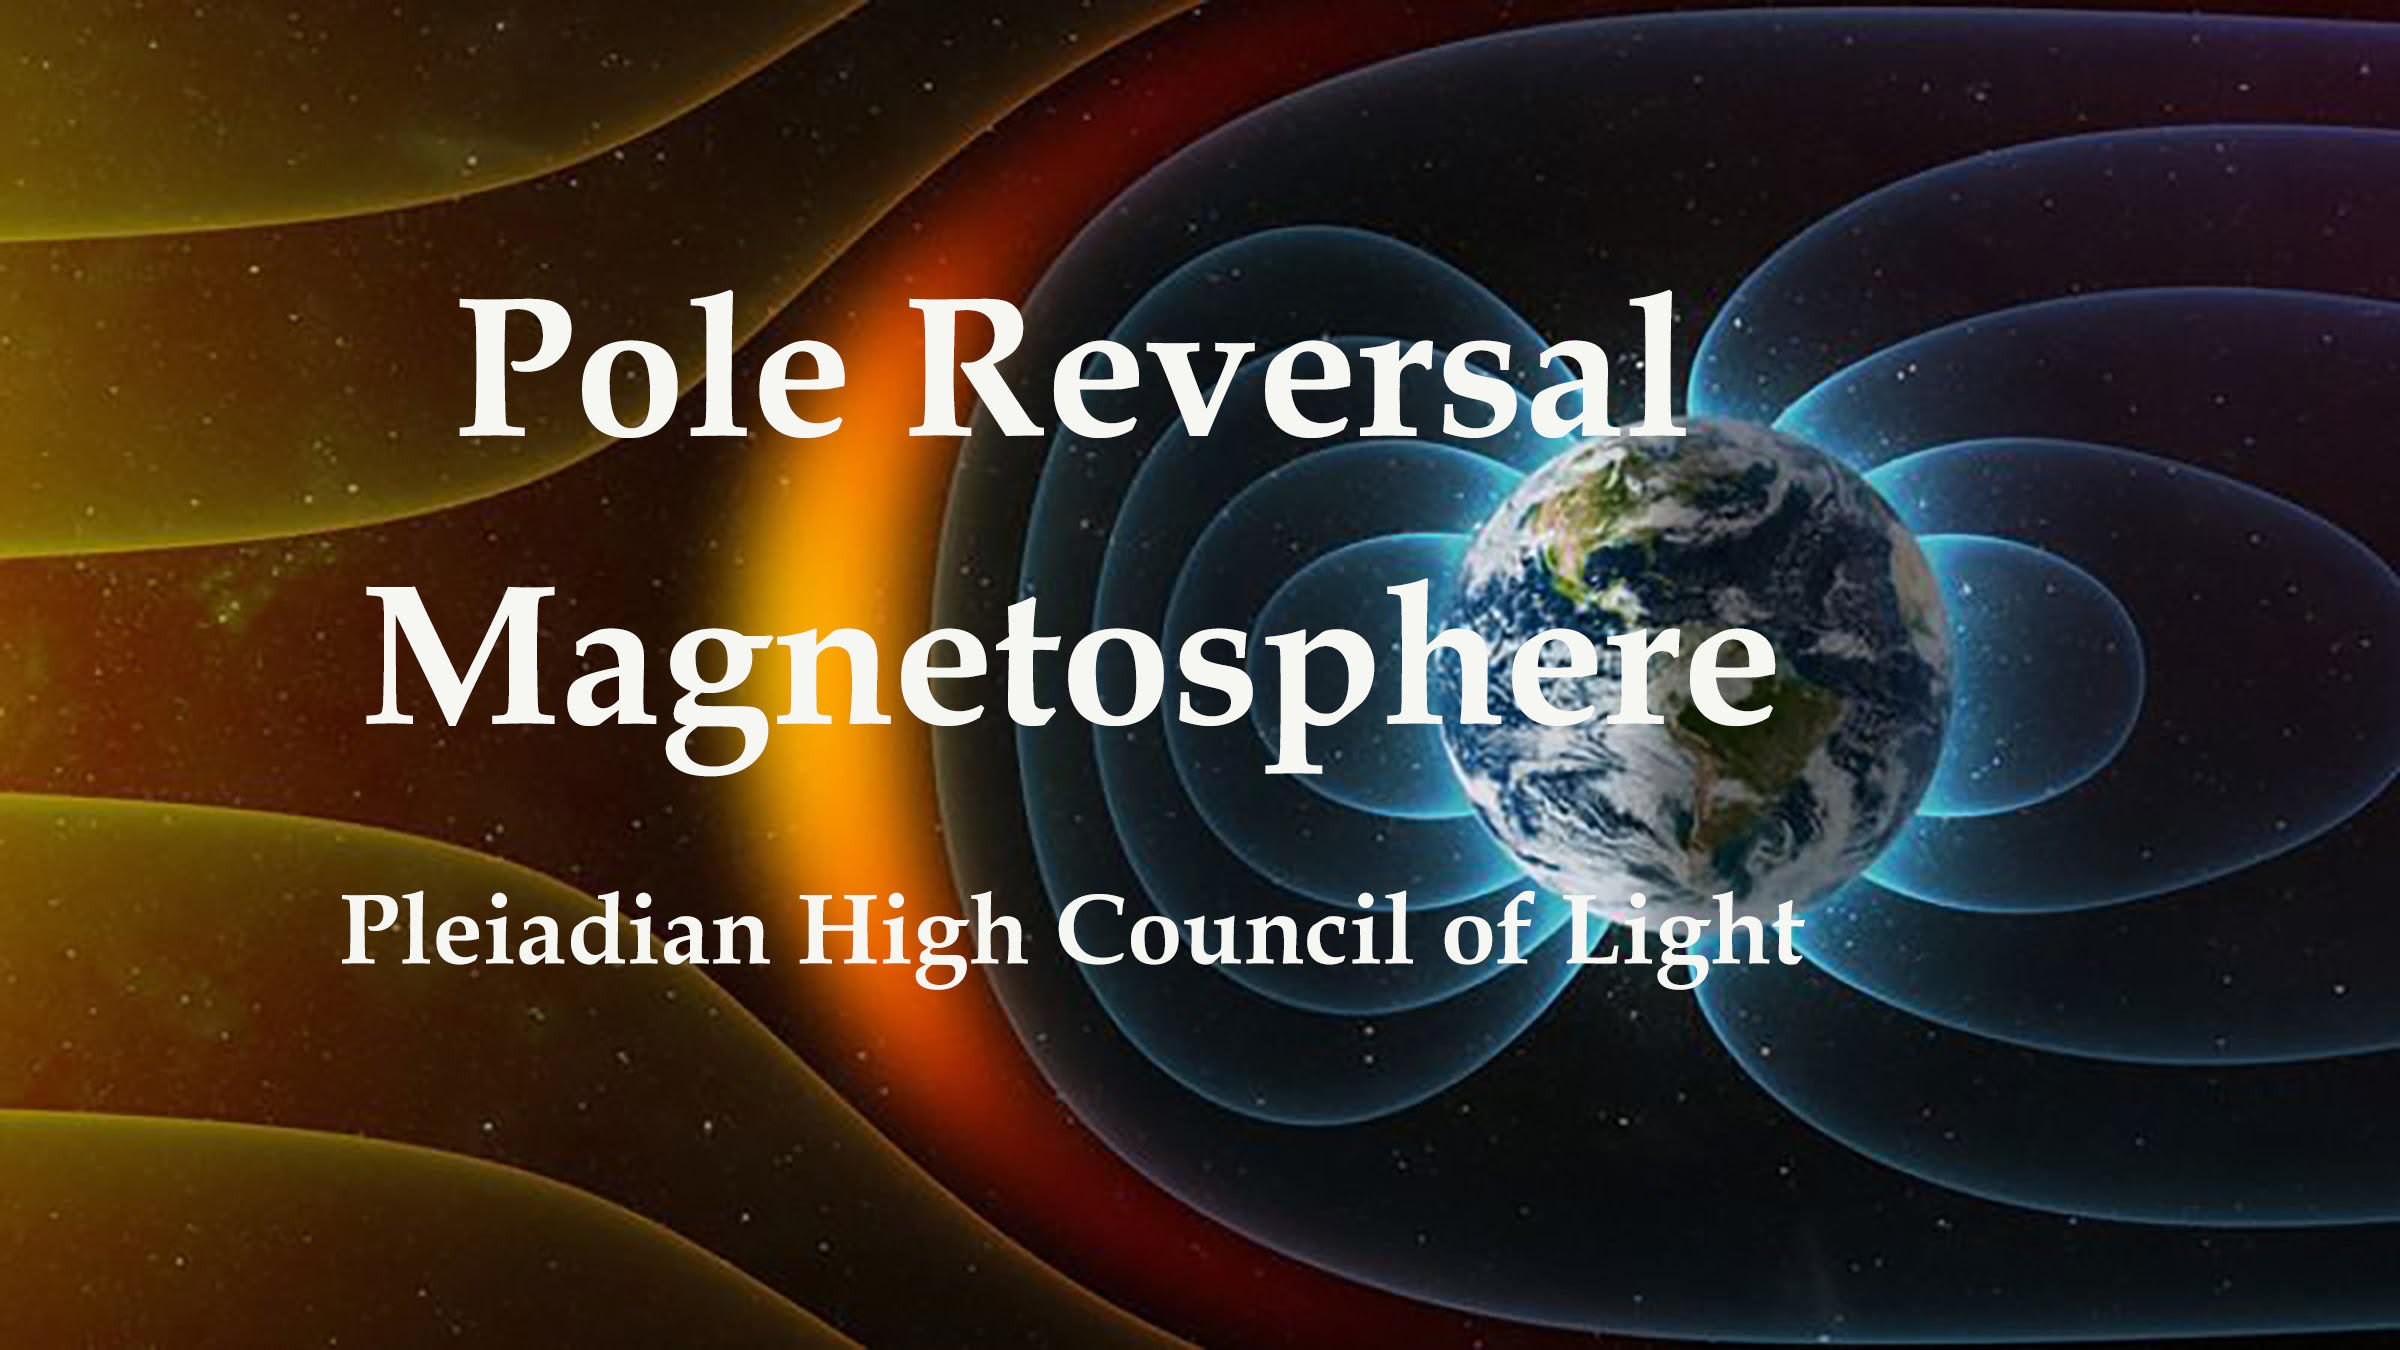 Pole Reversal Important Message Magnetosphere